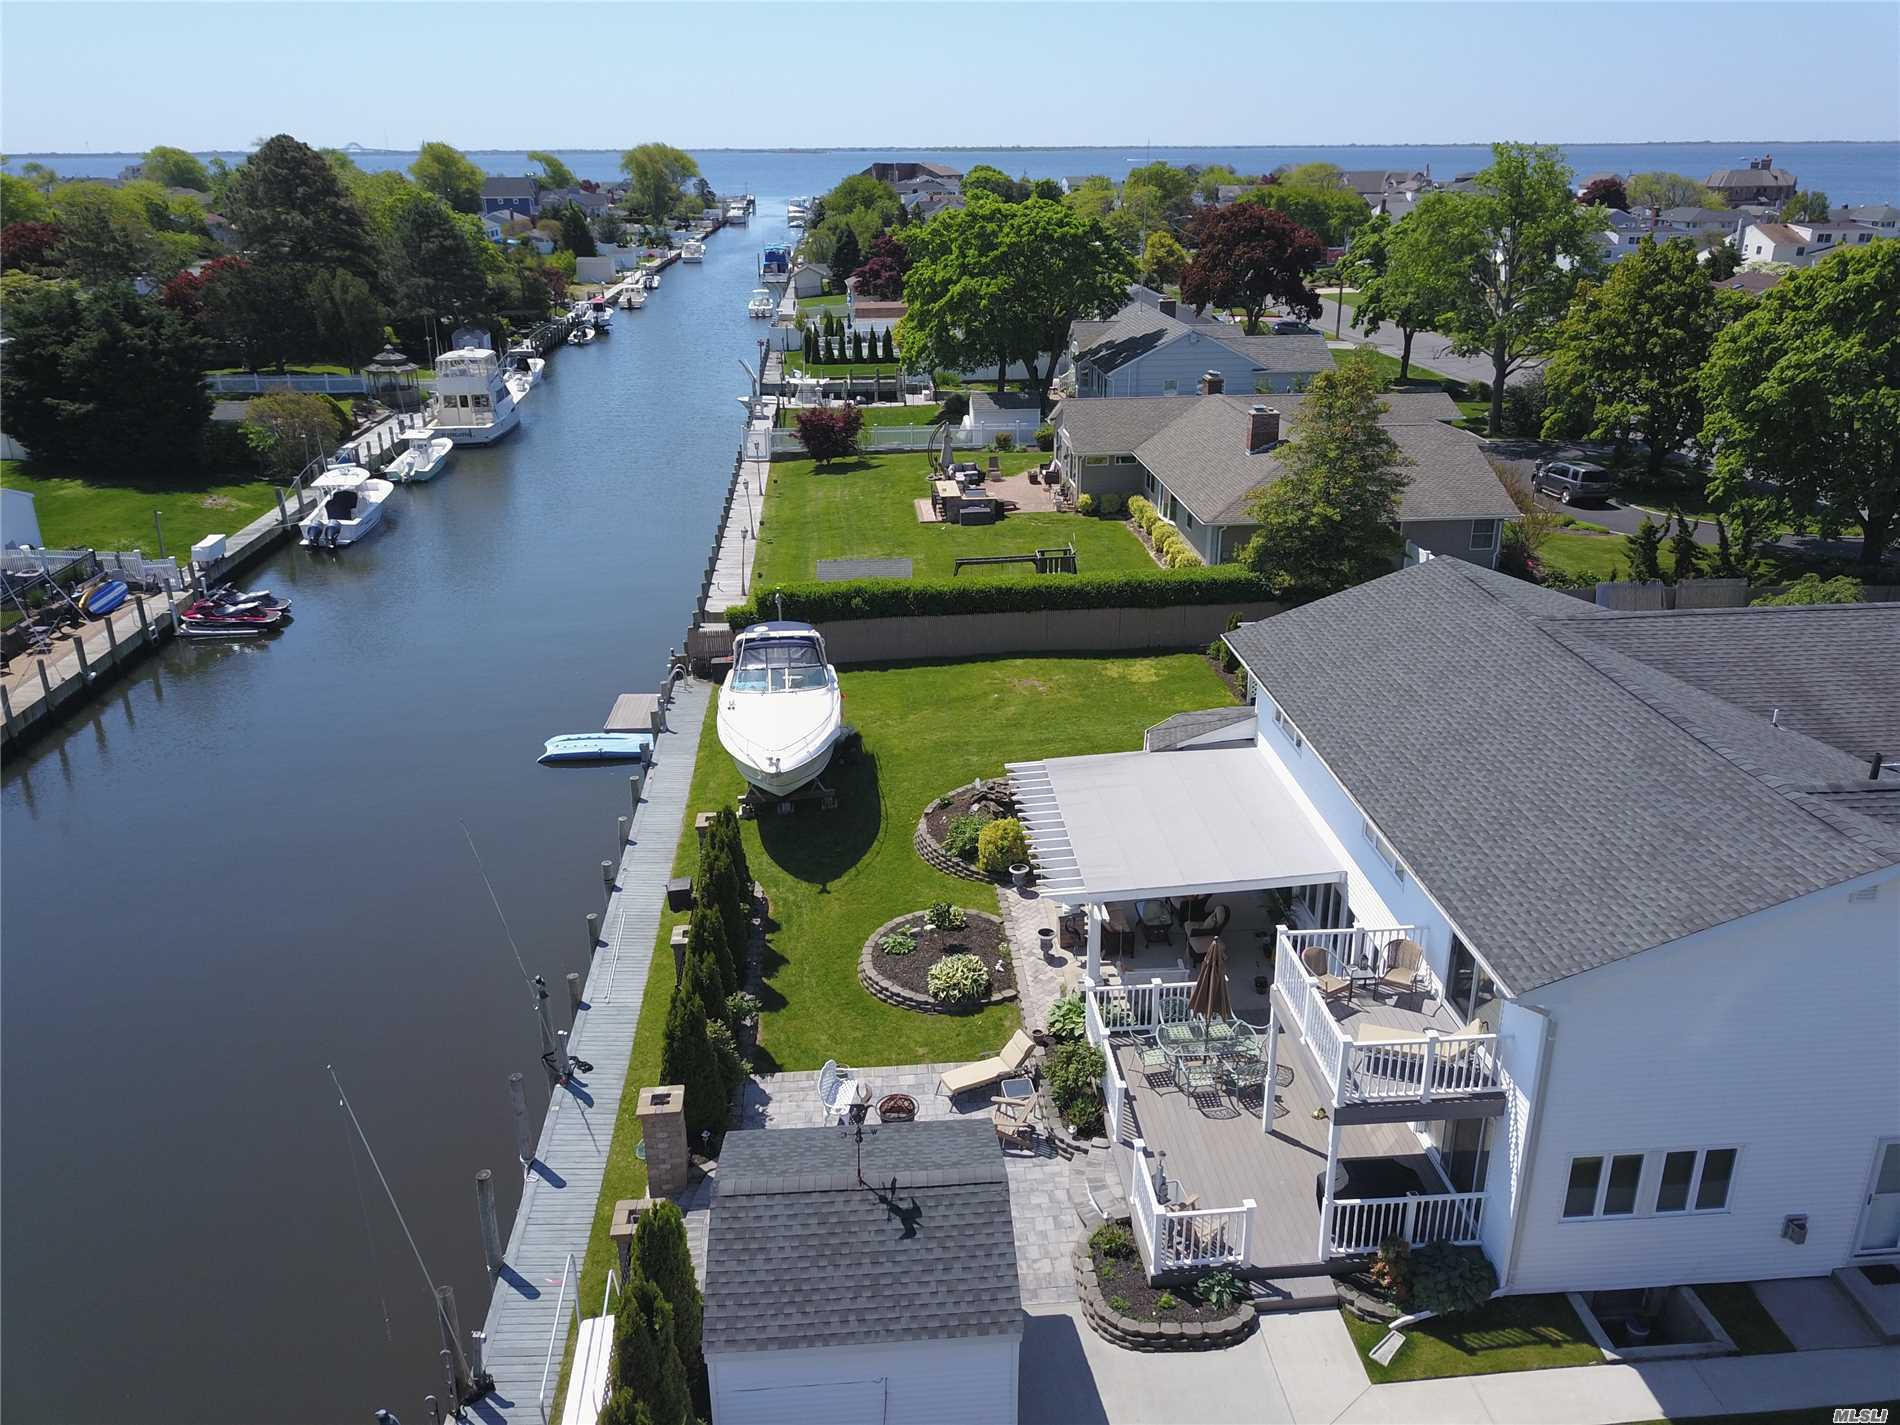 Sunsational Waterfront Gem! 112 Feet Navy Bulk Heading On Magnificently Large Property Located In Desired Willetts Point/West Islip School. Home Boasts Updated Kitchen W/Stainless Steel Appliances, & Granite Counters Open Concept W/Large Dining Rm, & Formal Living Rm. Den W/Gas Fireplace, Mud Rm, Laundry, 2 Car Garage W/Rm For Storage. Master Suite W/Wic & En Suite. Separate Quarters For Parents . 2nd Floor Includes 4 Brs, Foyer, 2 F Baths & Great Rm/Media Rm. I Beam Constr.No Sandy Damage Xzone